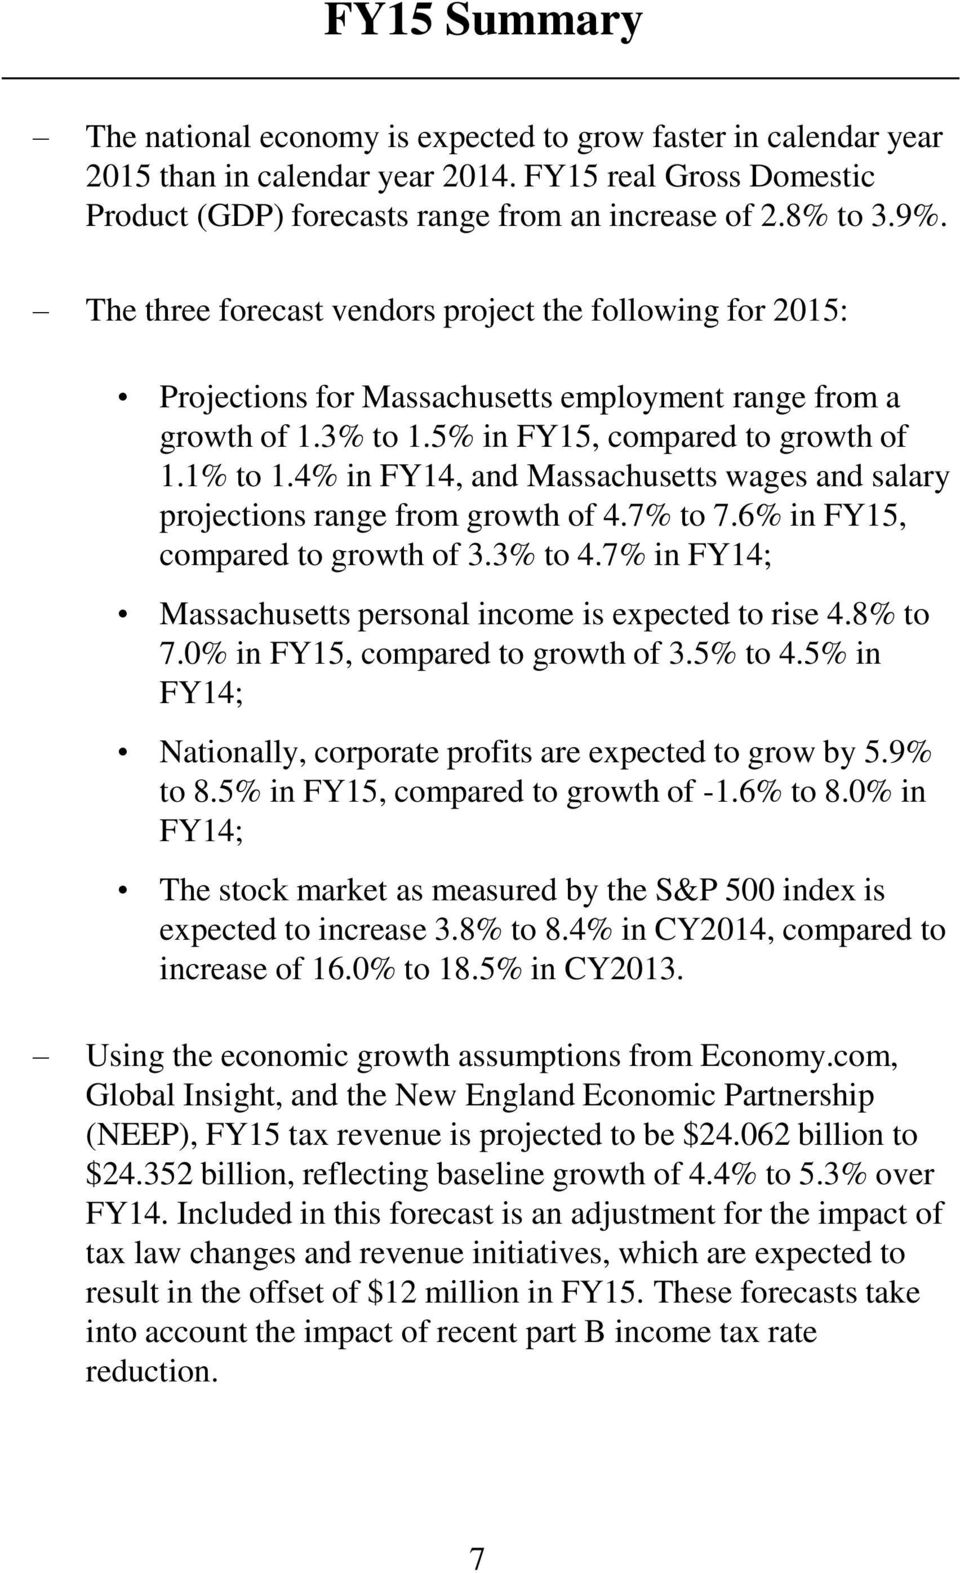 4% in FY14, and Massachusetts wages and salary projections range from growth of 4.7% to 7.6% in FY15, compared to growth of 3.3% to 4.7% in FY14; Massachusetts personal income is expected to rise 4.